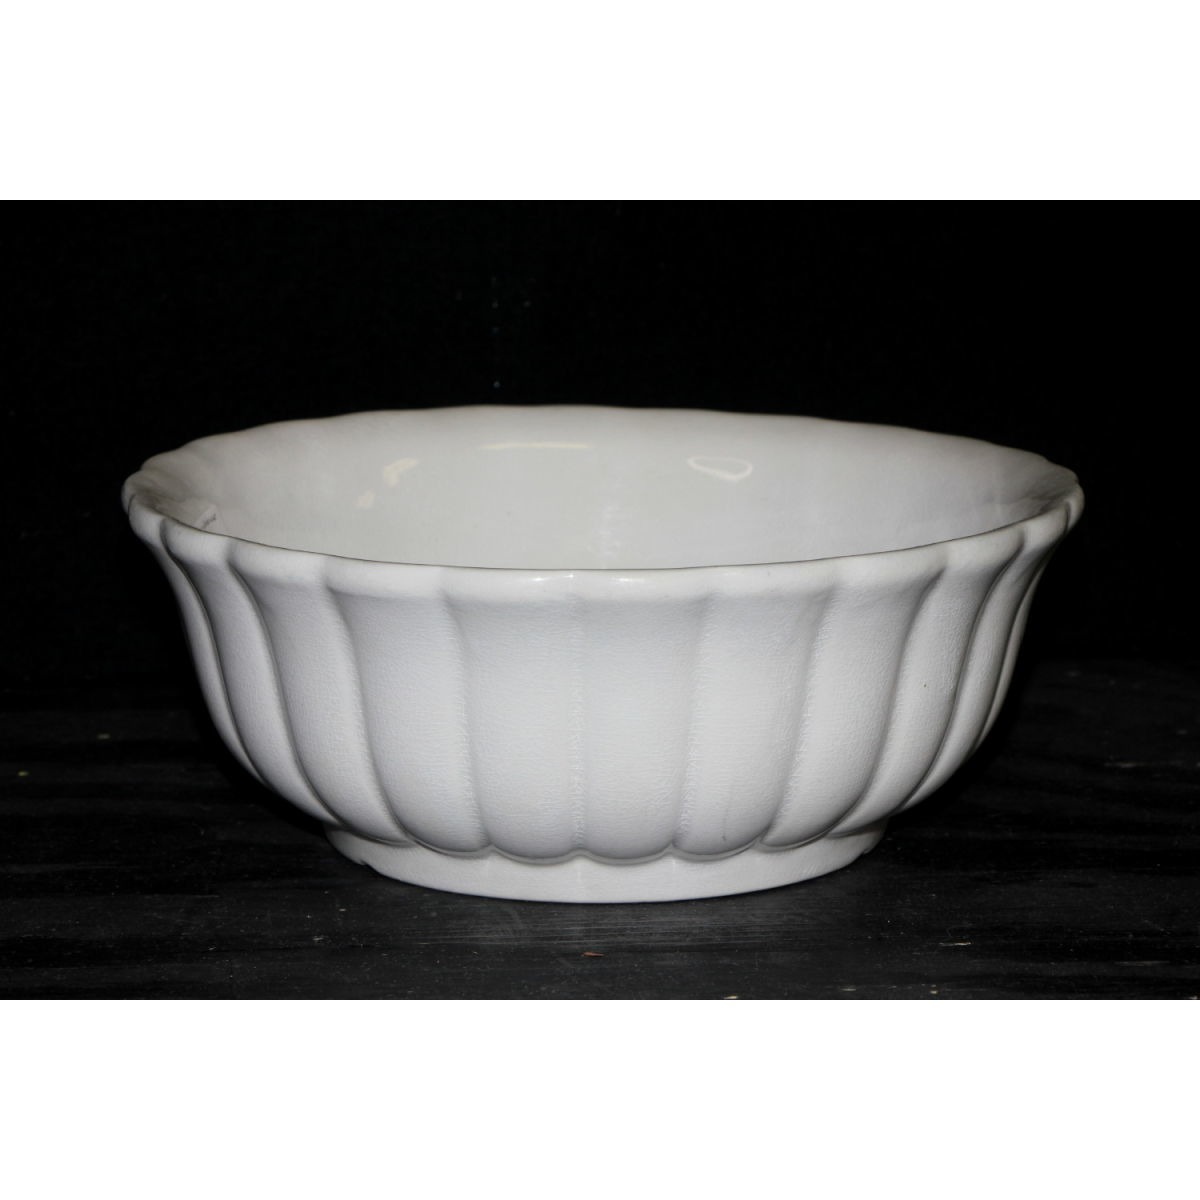 "Medium Fluted Ironstone Serving Bowl - 9.5"" diameter"